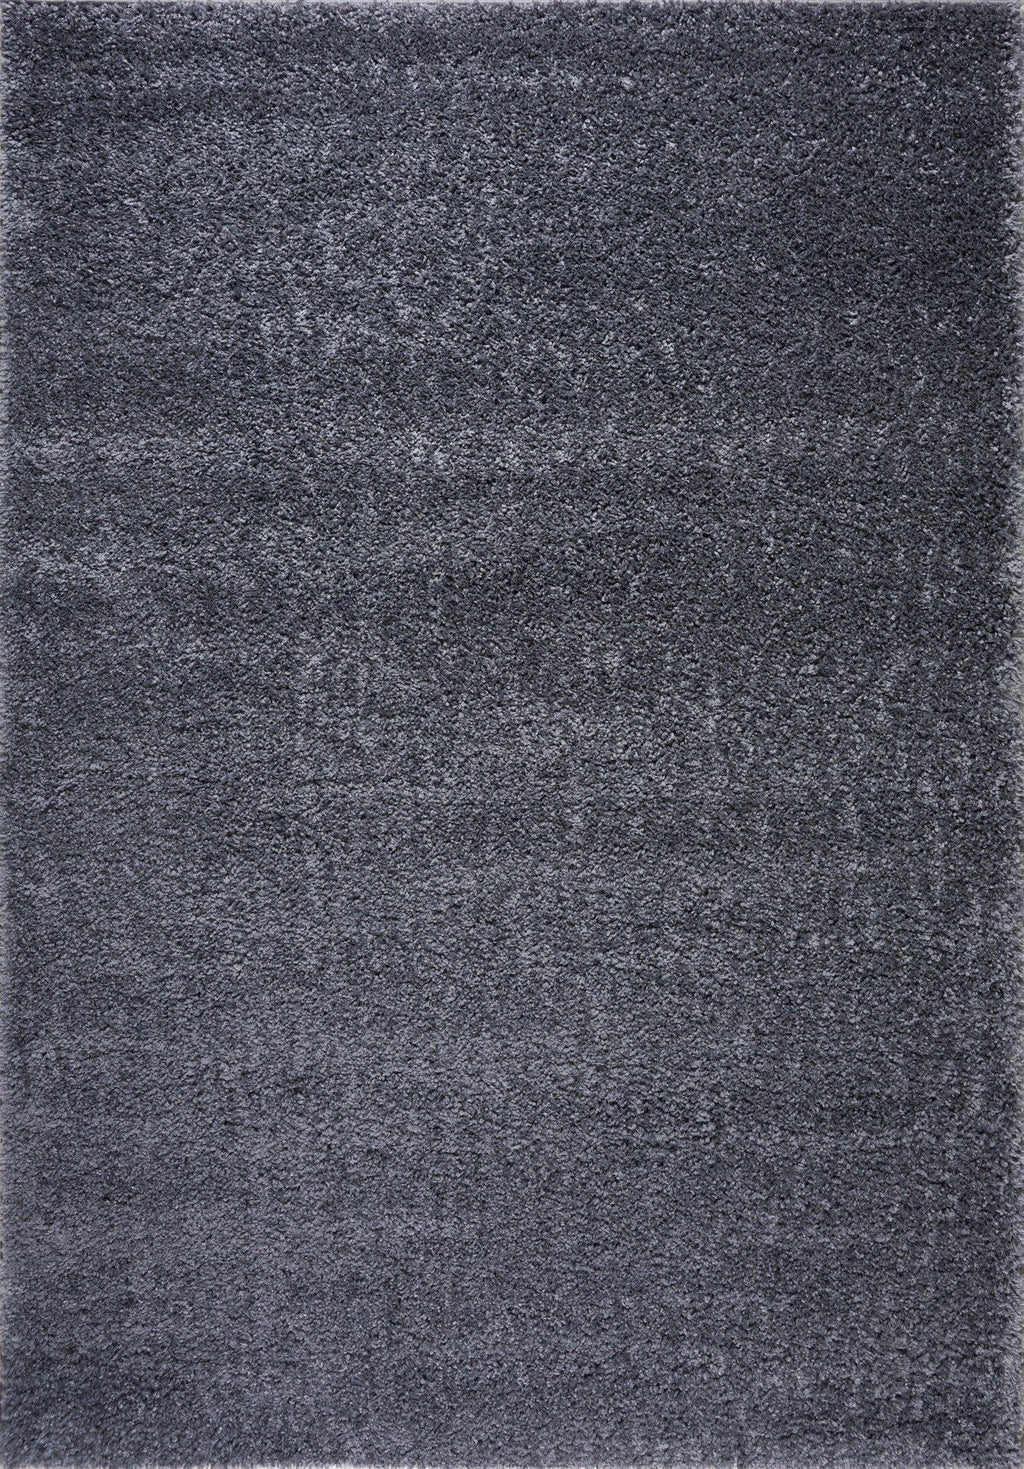 Solid Color Shaggy Meknes Durable Beautiful Turkish Rug in Gray